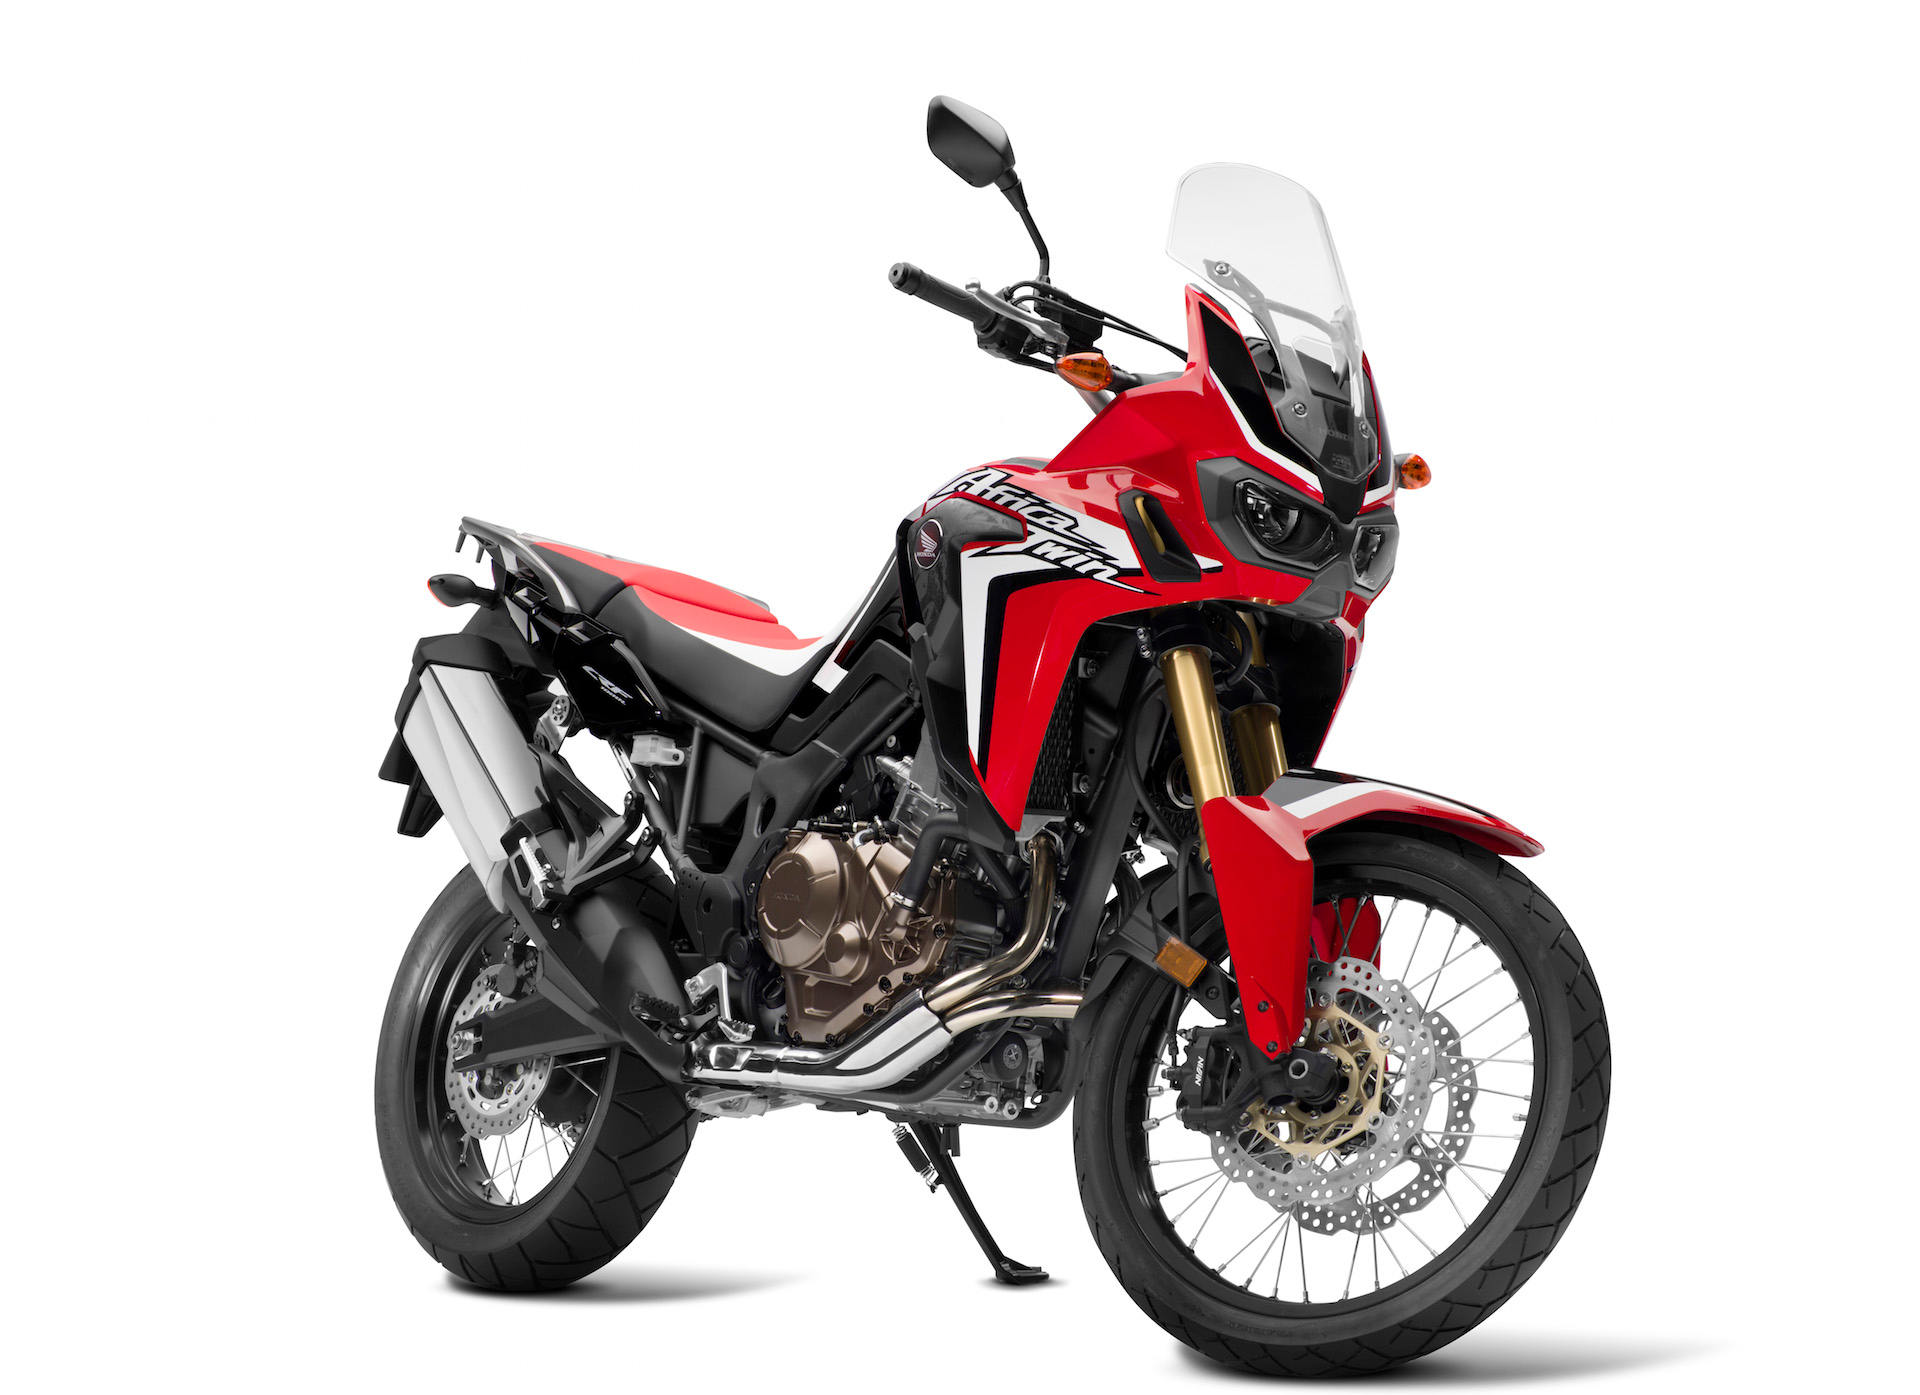 Honda Africa Twin Priced U S $12 999 $13 699 with DCT